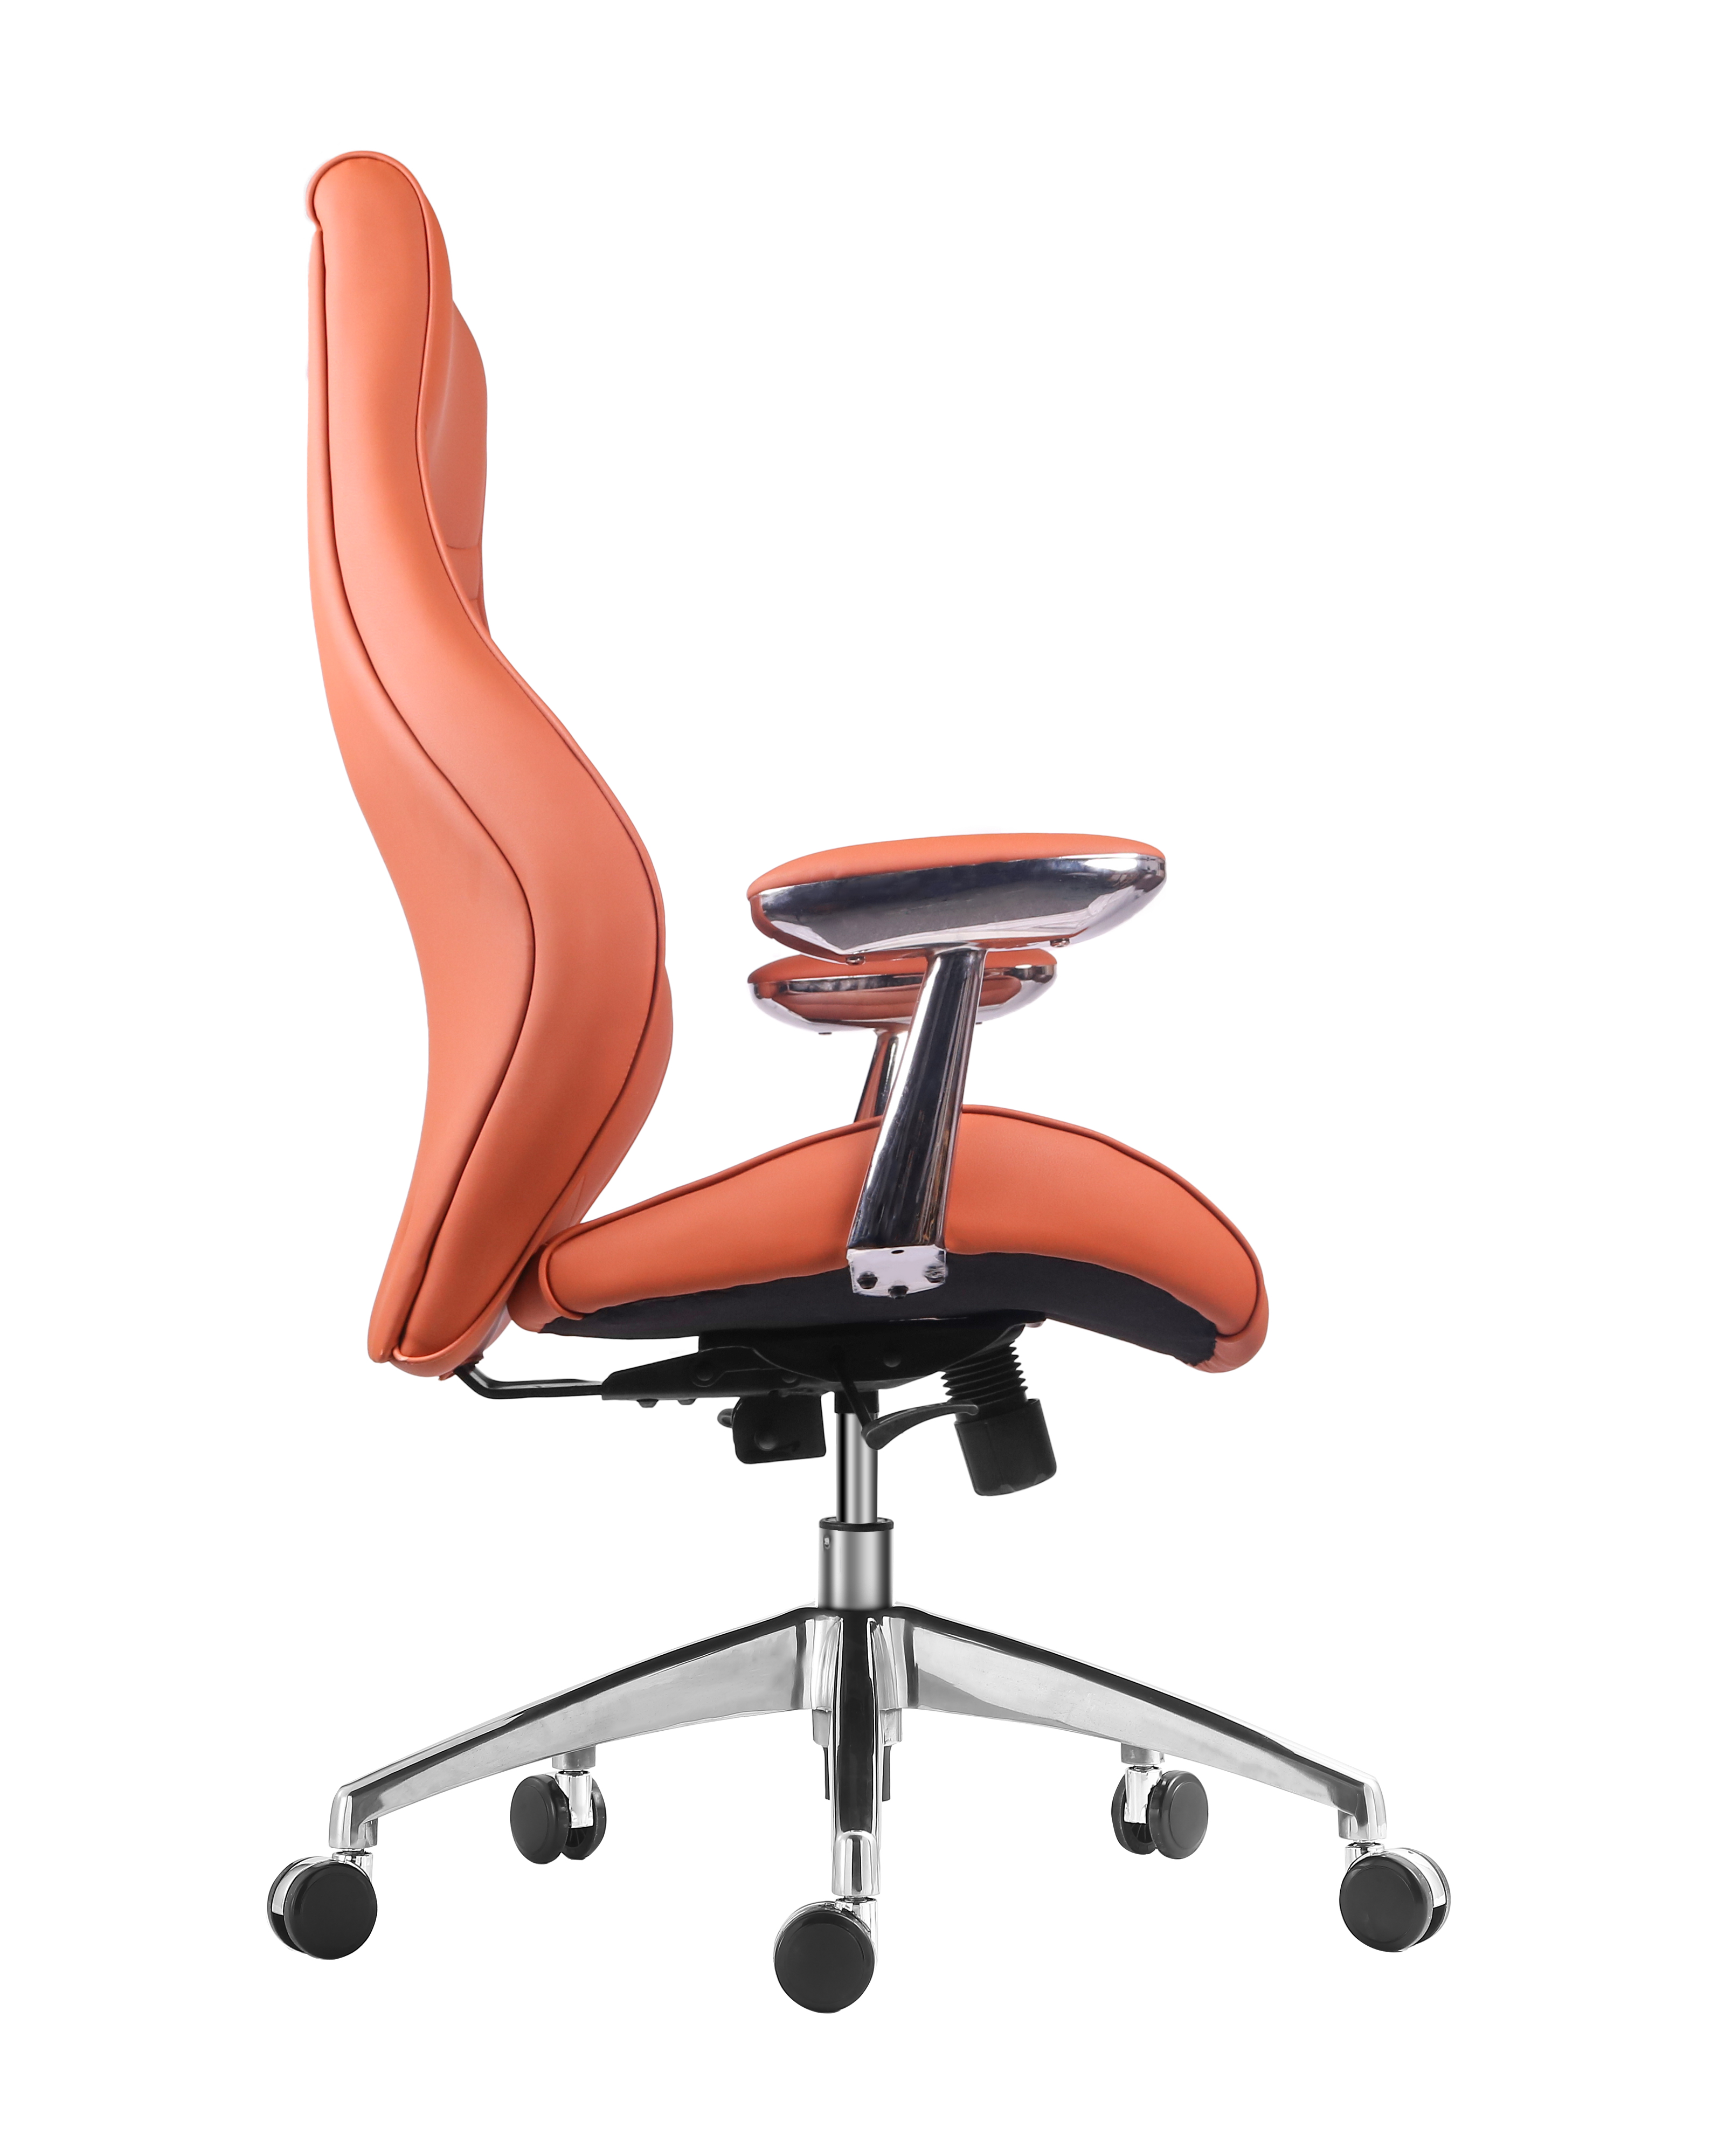 Ergonomic office leather chair executive chair office  swivel chair ergonomic seating